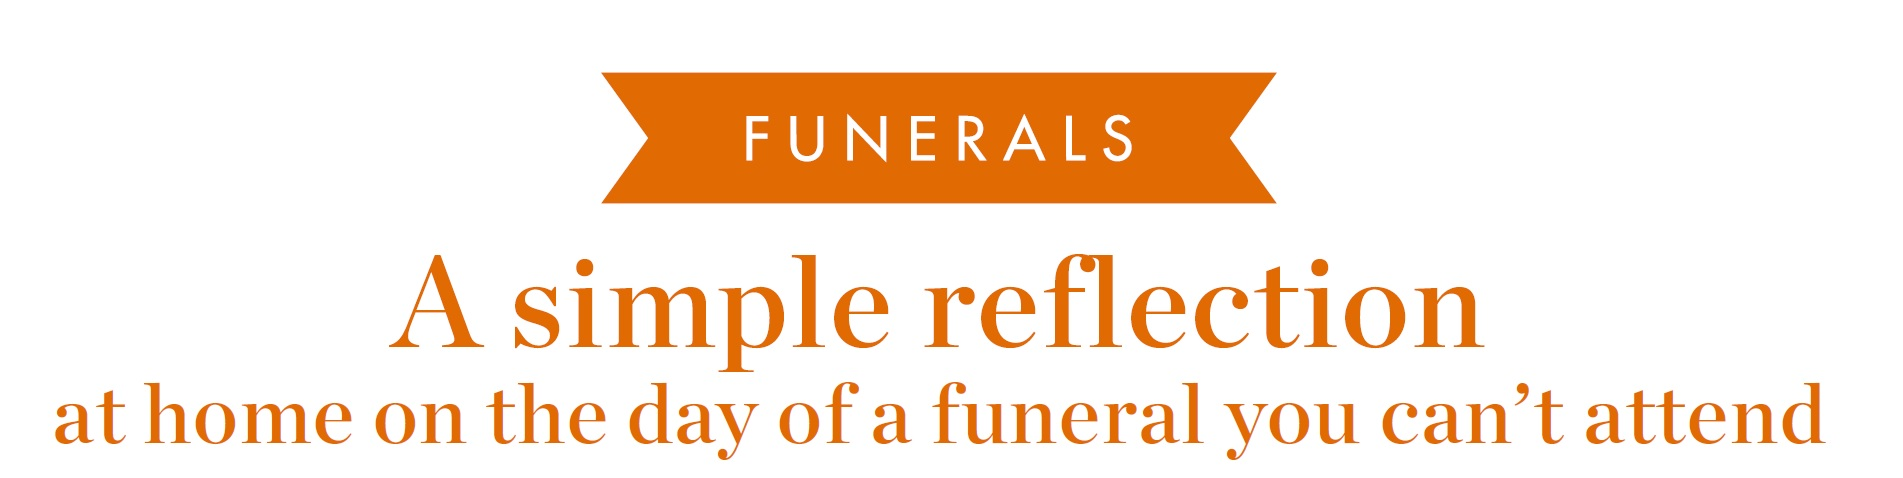 Home Reflection Funeral